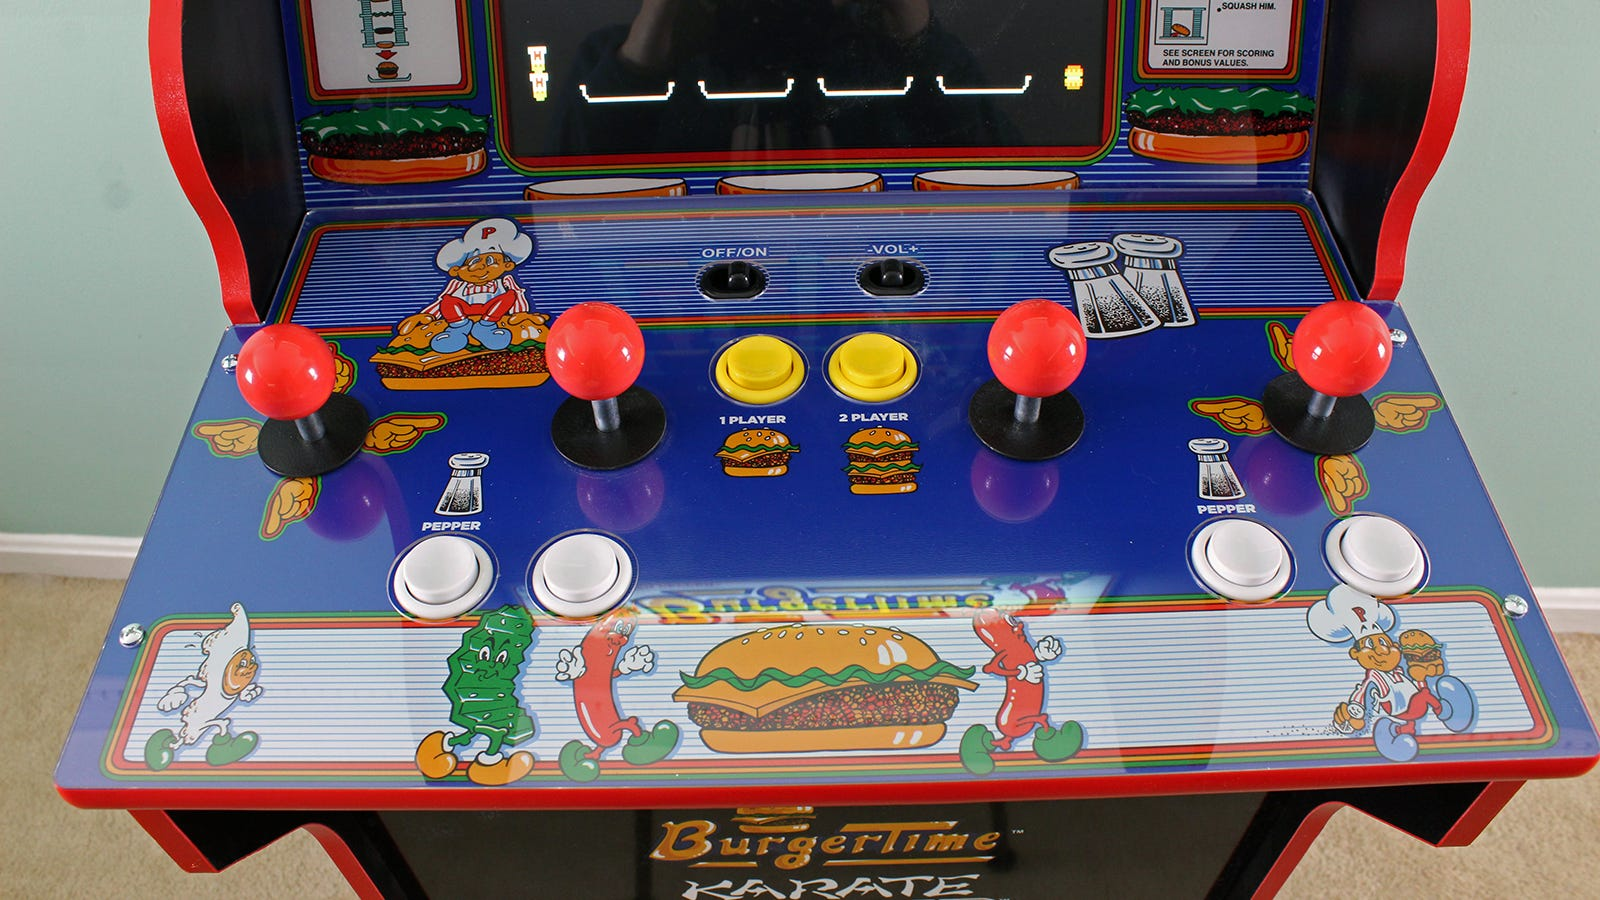 A close up of the control deck showing directional hands around the first and fourth joystick.